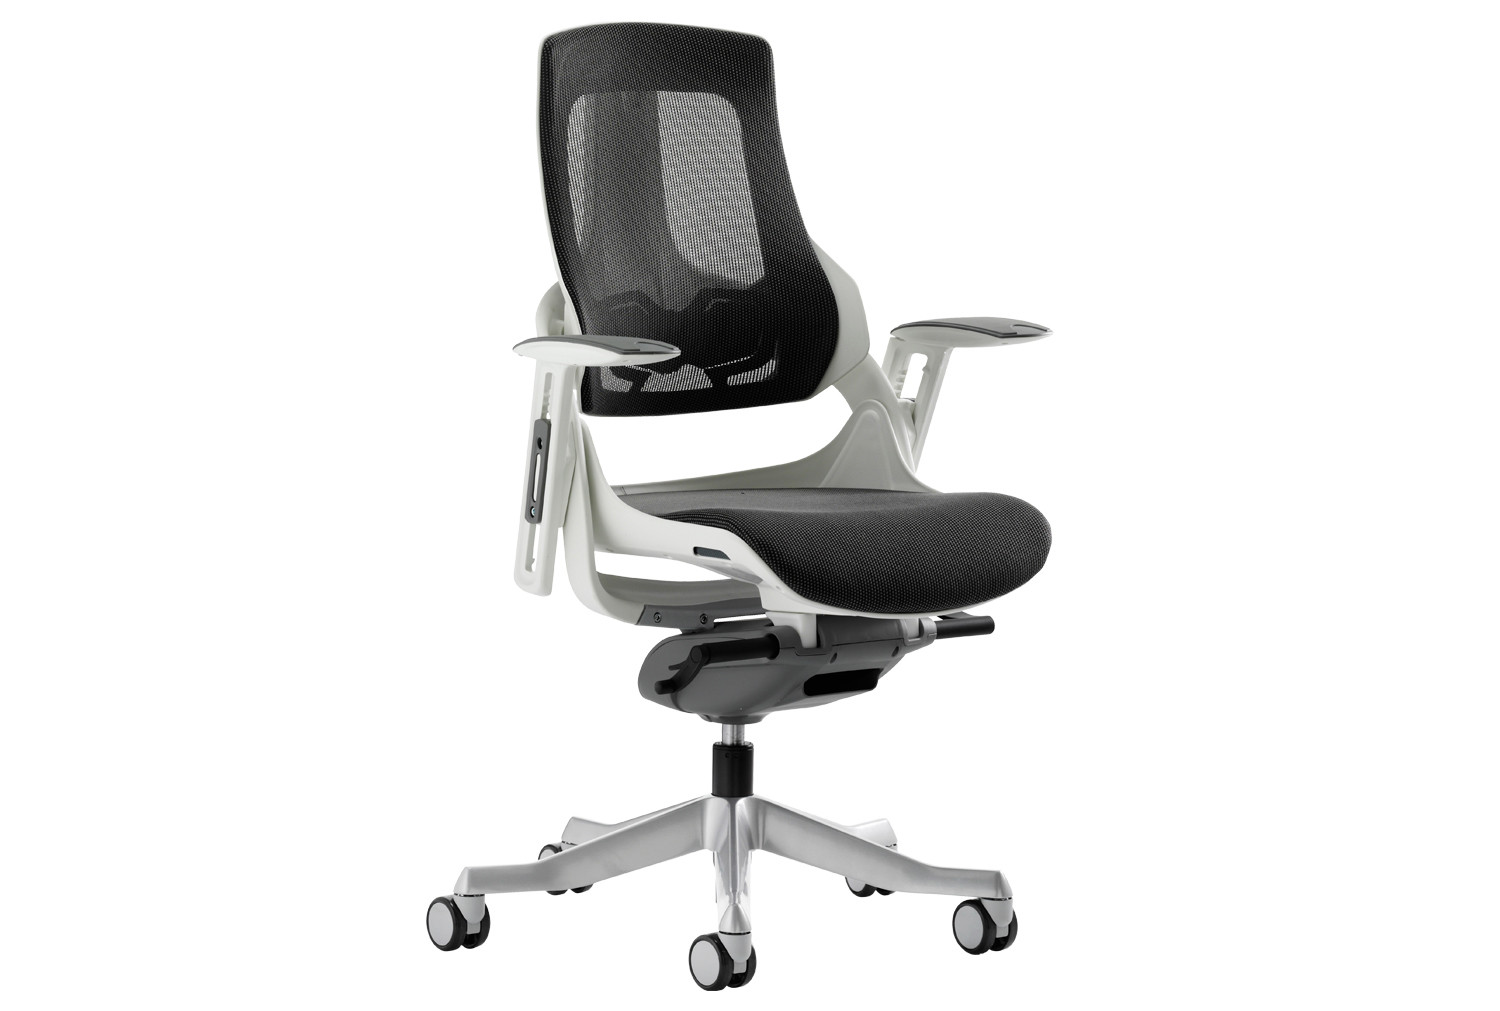 Zephyr mesh back executive operator chair